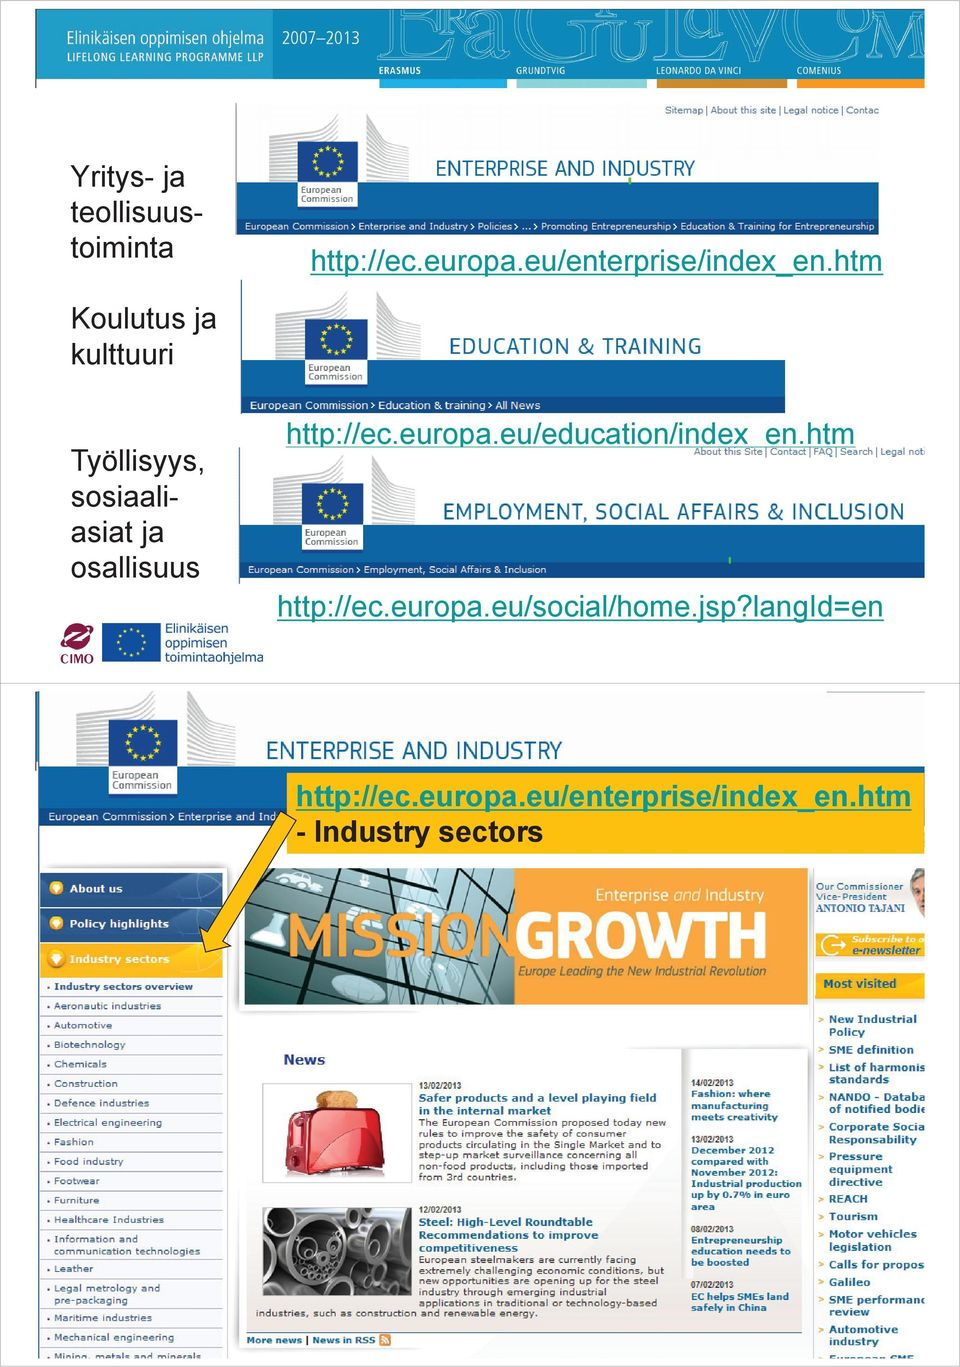 http://ec.europa.eu/education/index_en.htm http://ec.europa.eu/social/home.